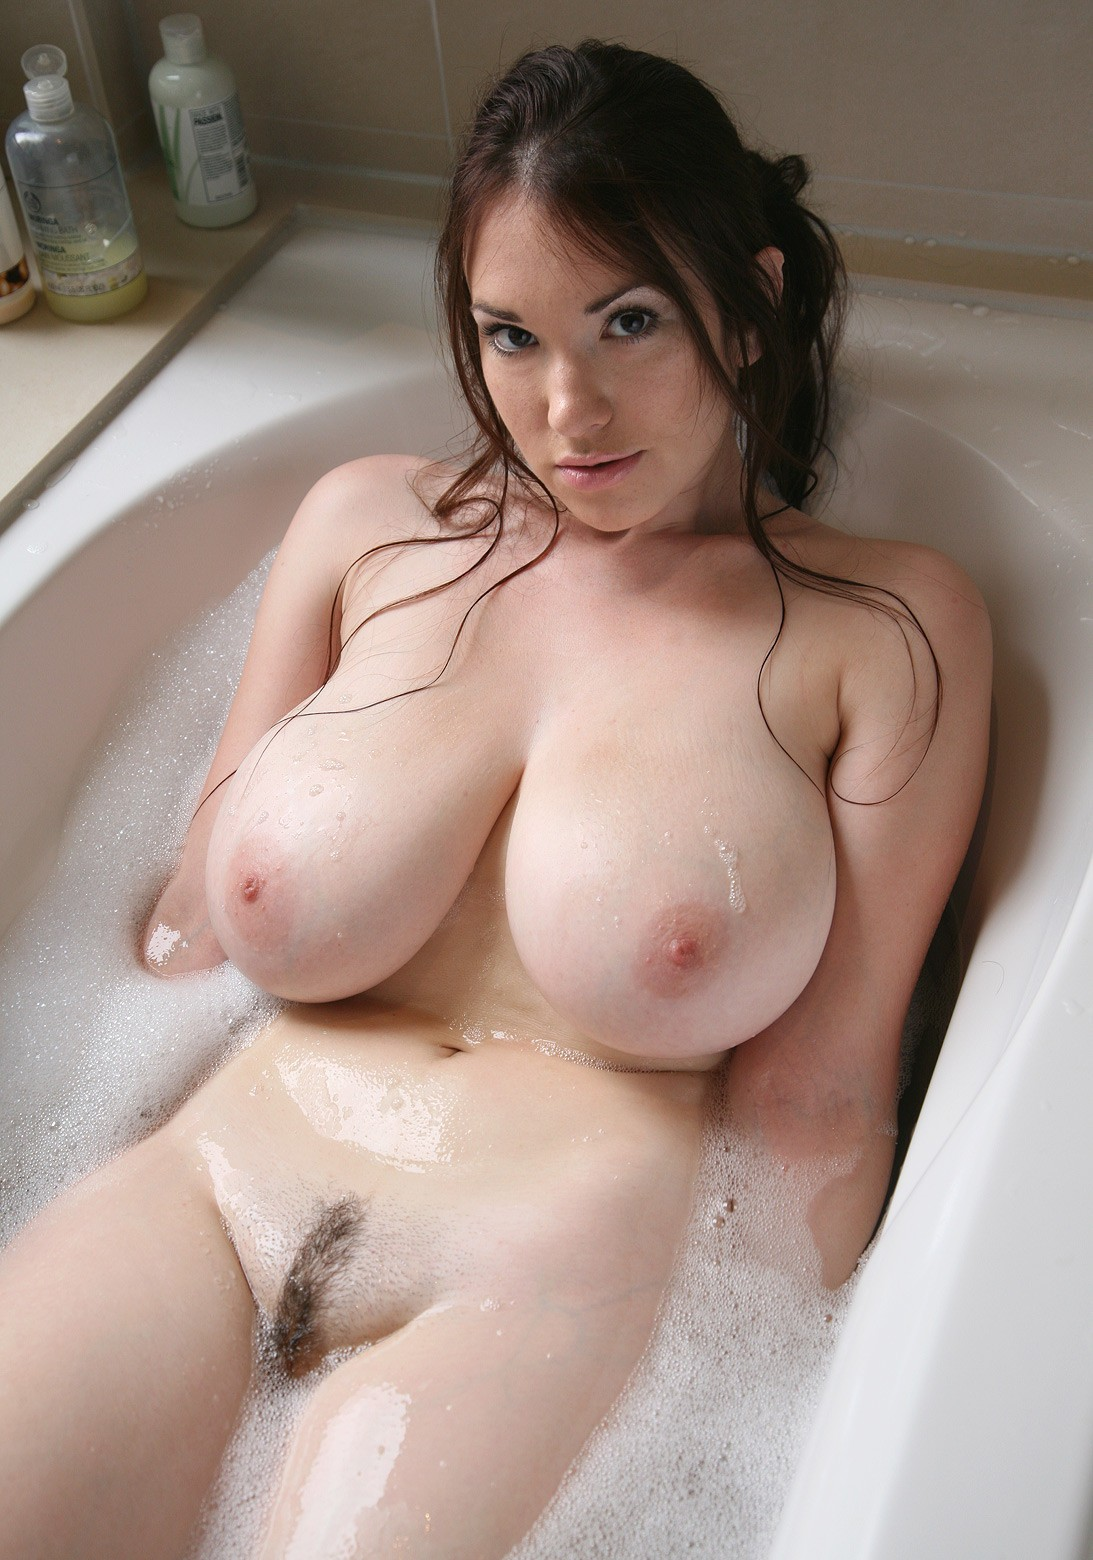 Nude simran showing her boobs n pussy